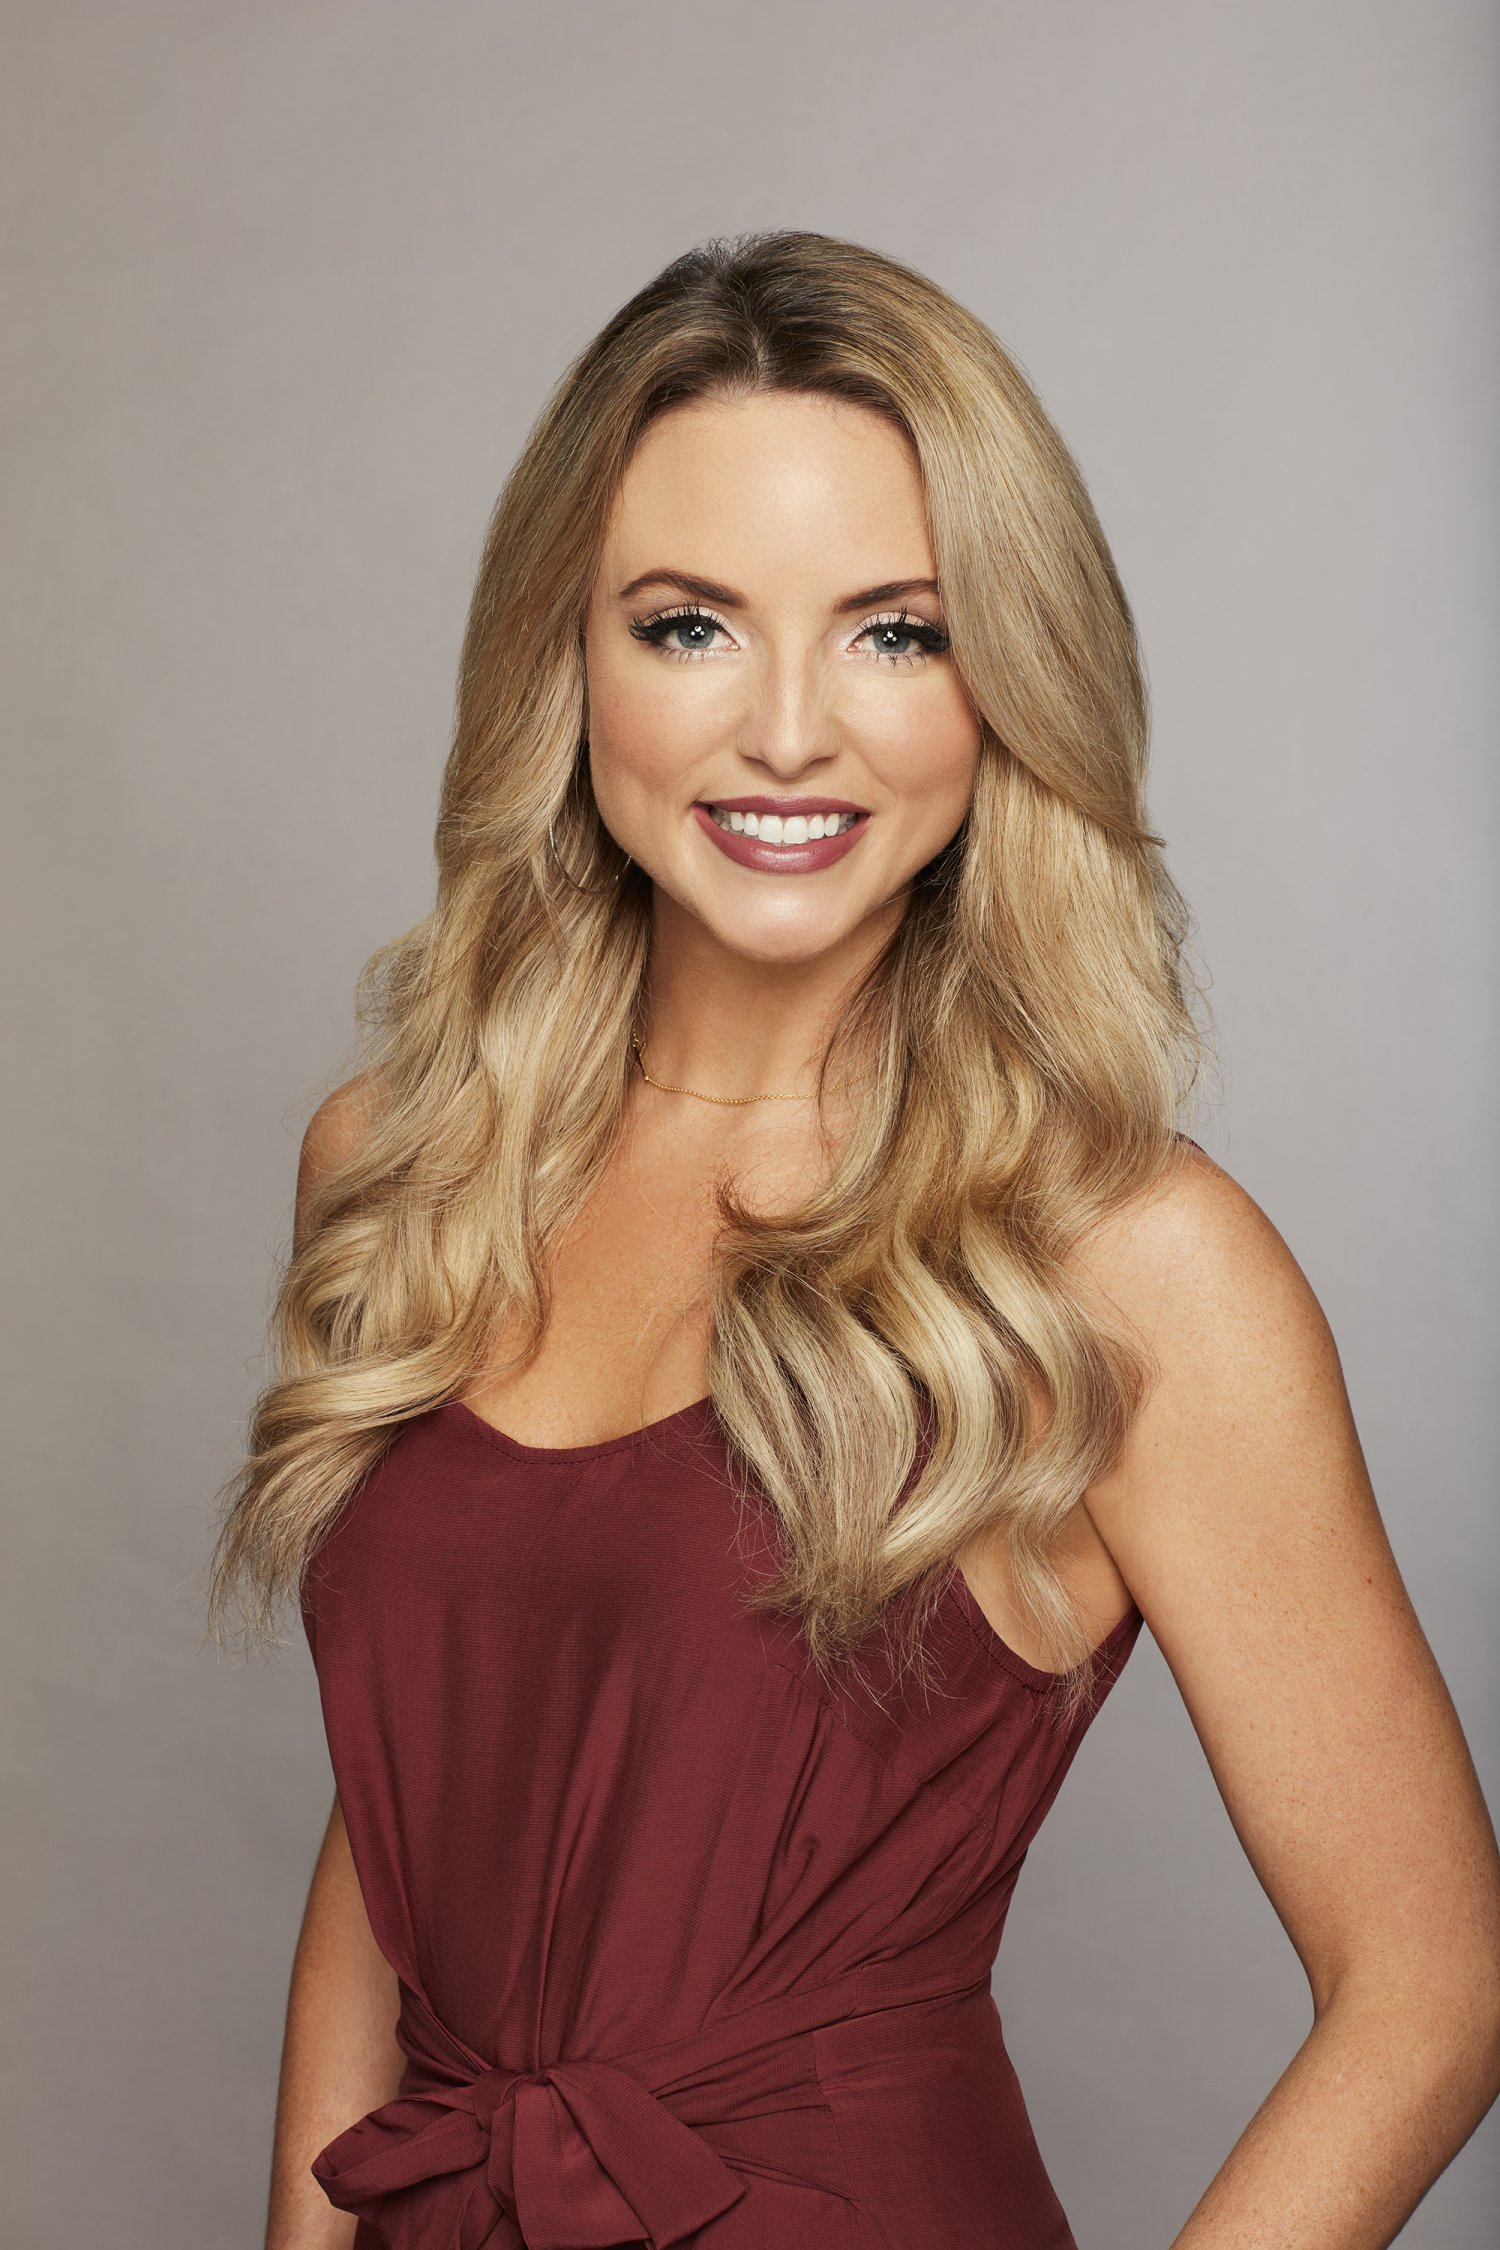 Bachelor 23 - Erin Landry - Discussion - **Sleuthing Spoilers** 4854-o